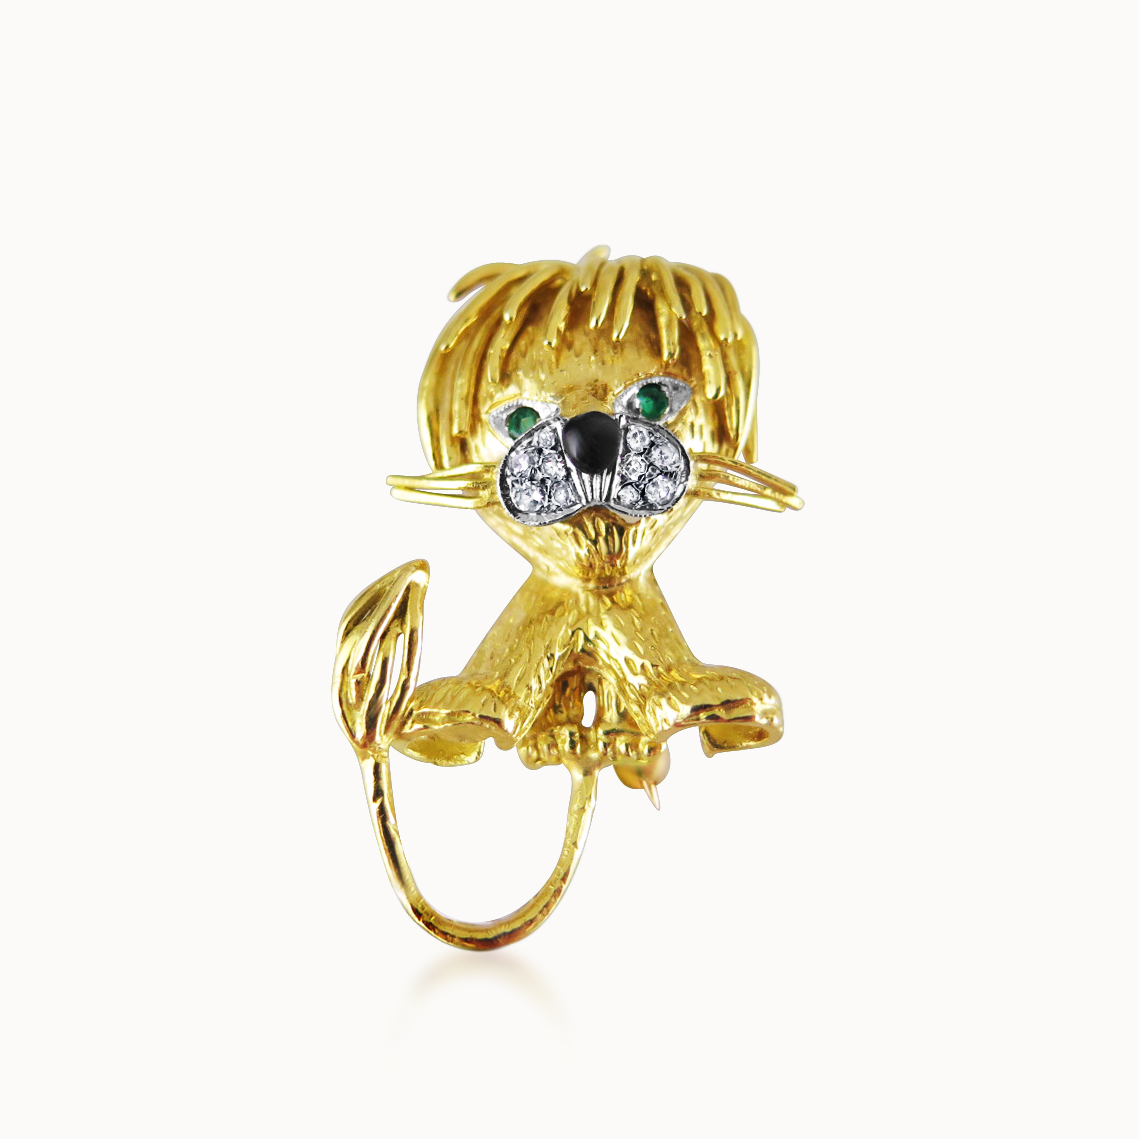 'LION ÉBOURIFFÉ' BROOCH BY VAN CLEEF & ARPELS